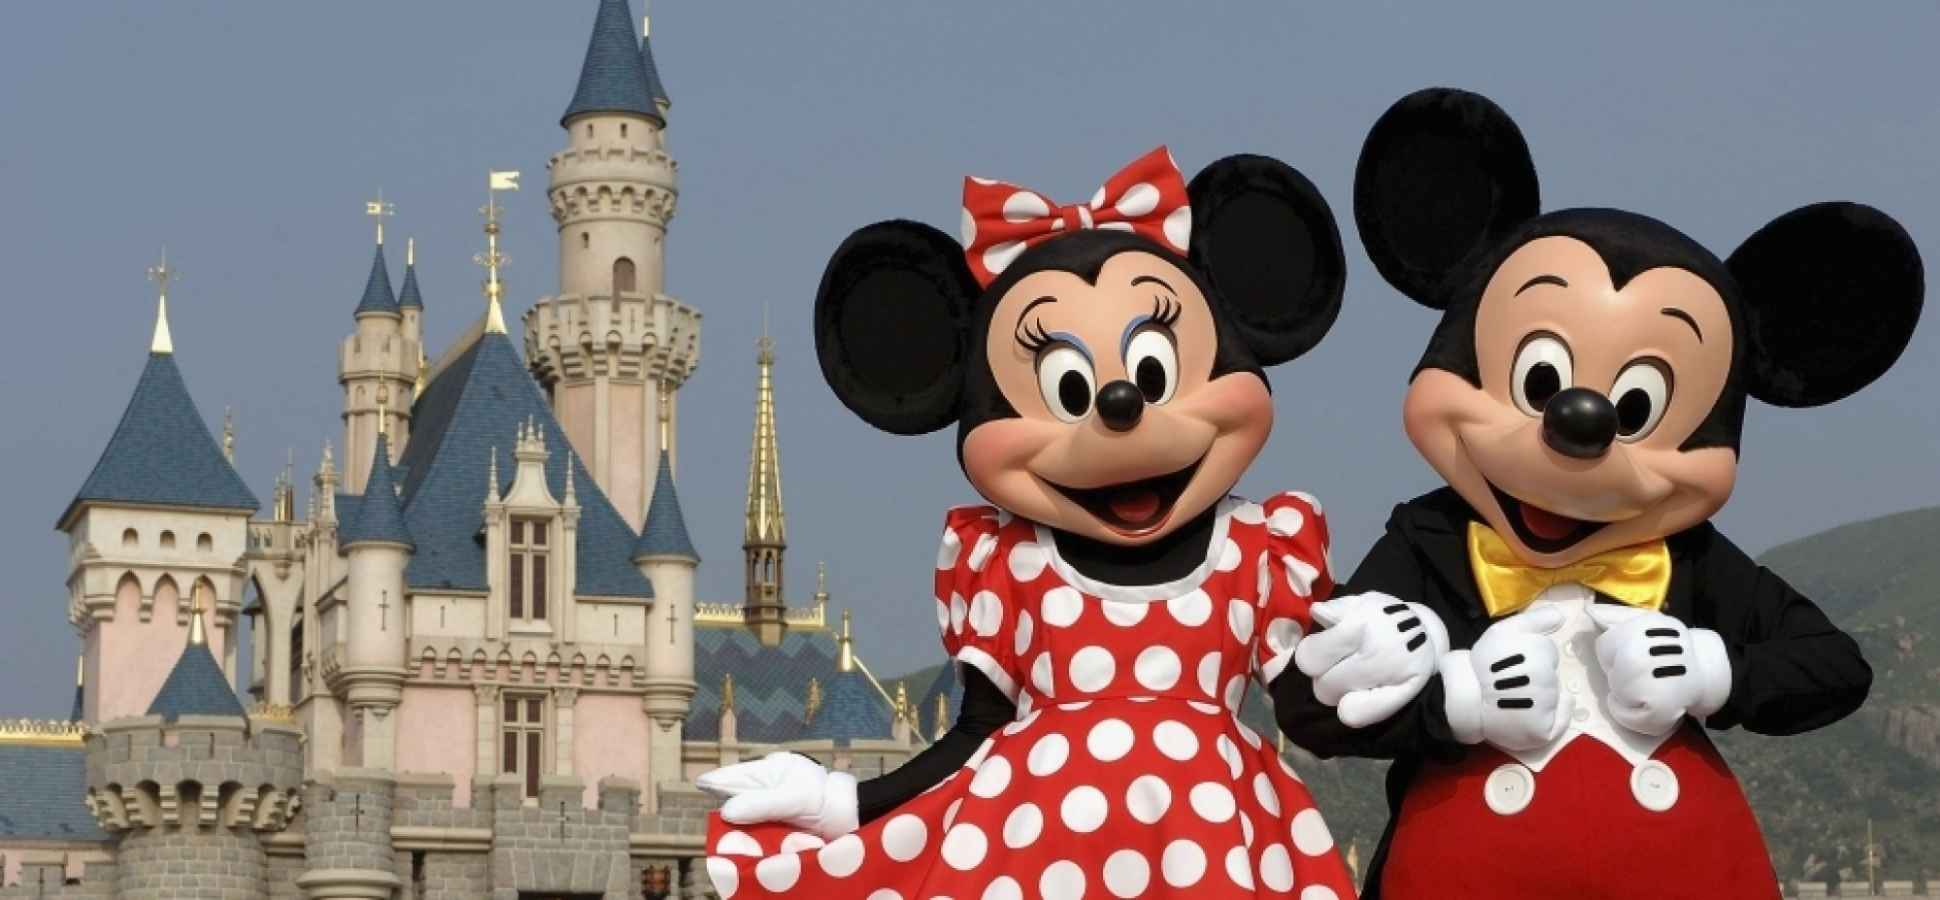 12 Moving Facts About Walt Disney That Will Inspire You to Succeed